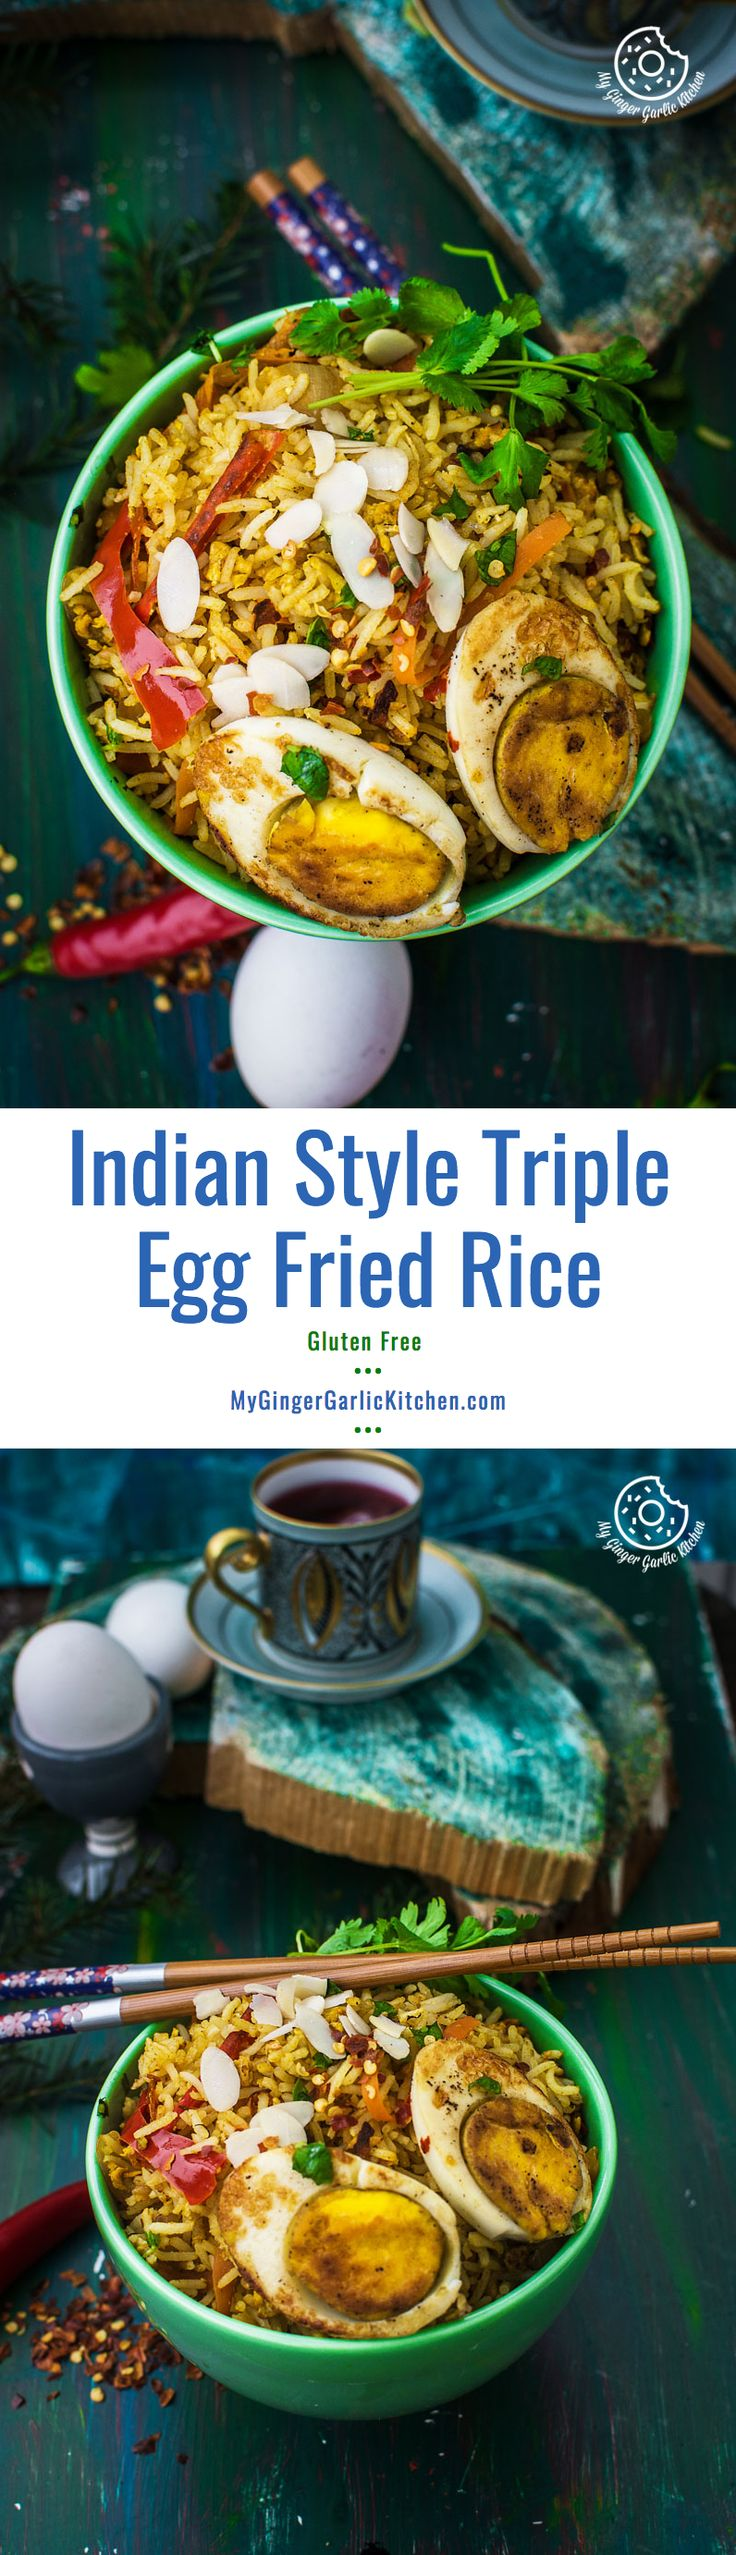 This Indian Style Triple | Easy Egg Fried rice would surely tickle the egg lovers amongst us. It tastes scrumptious.  And it takes only in 30 minutes.